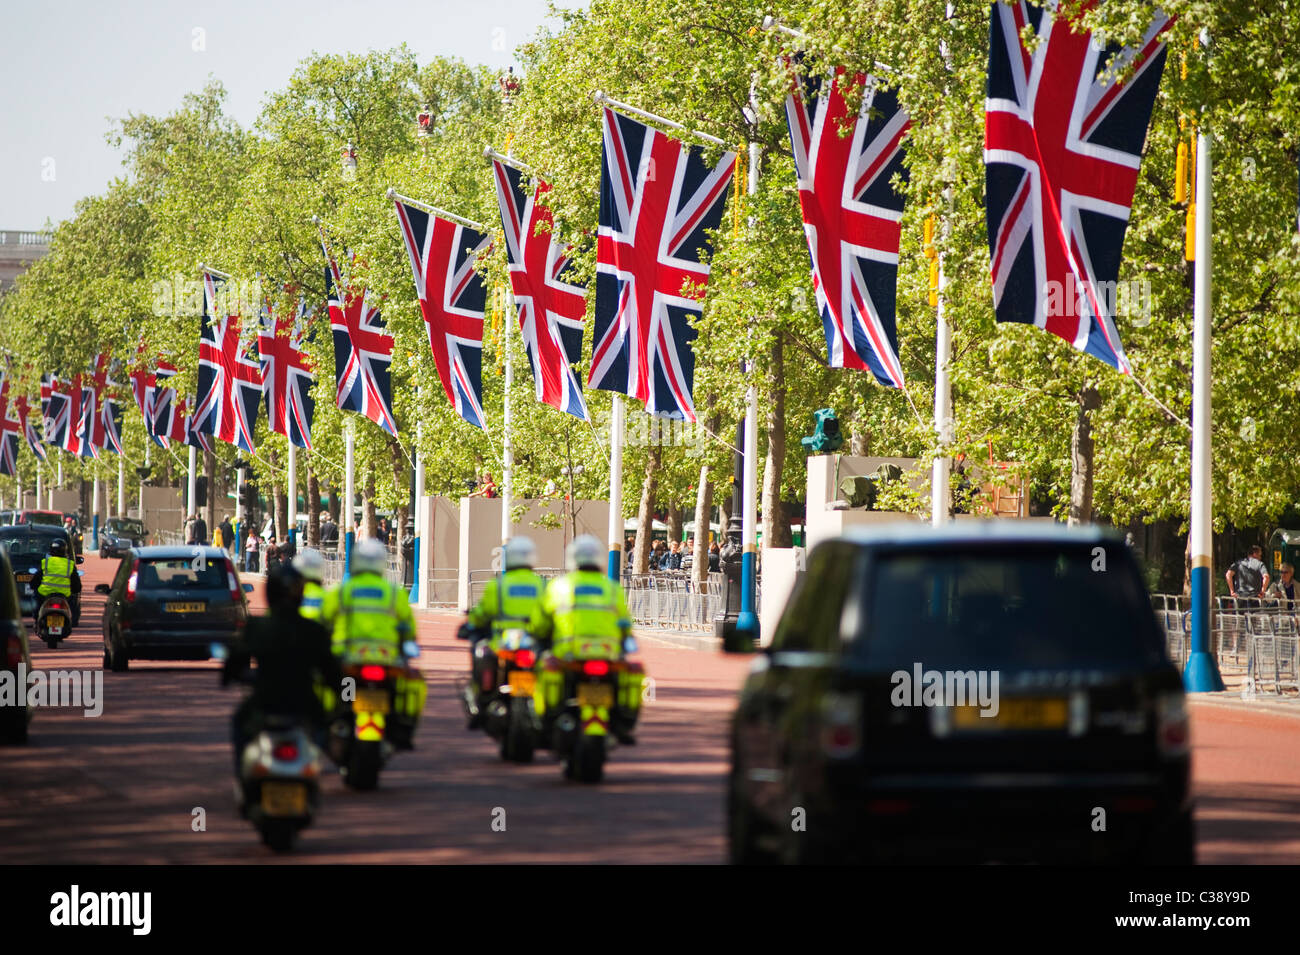 View of The Mall in central London with Union flags lining the route. - Stock Image